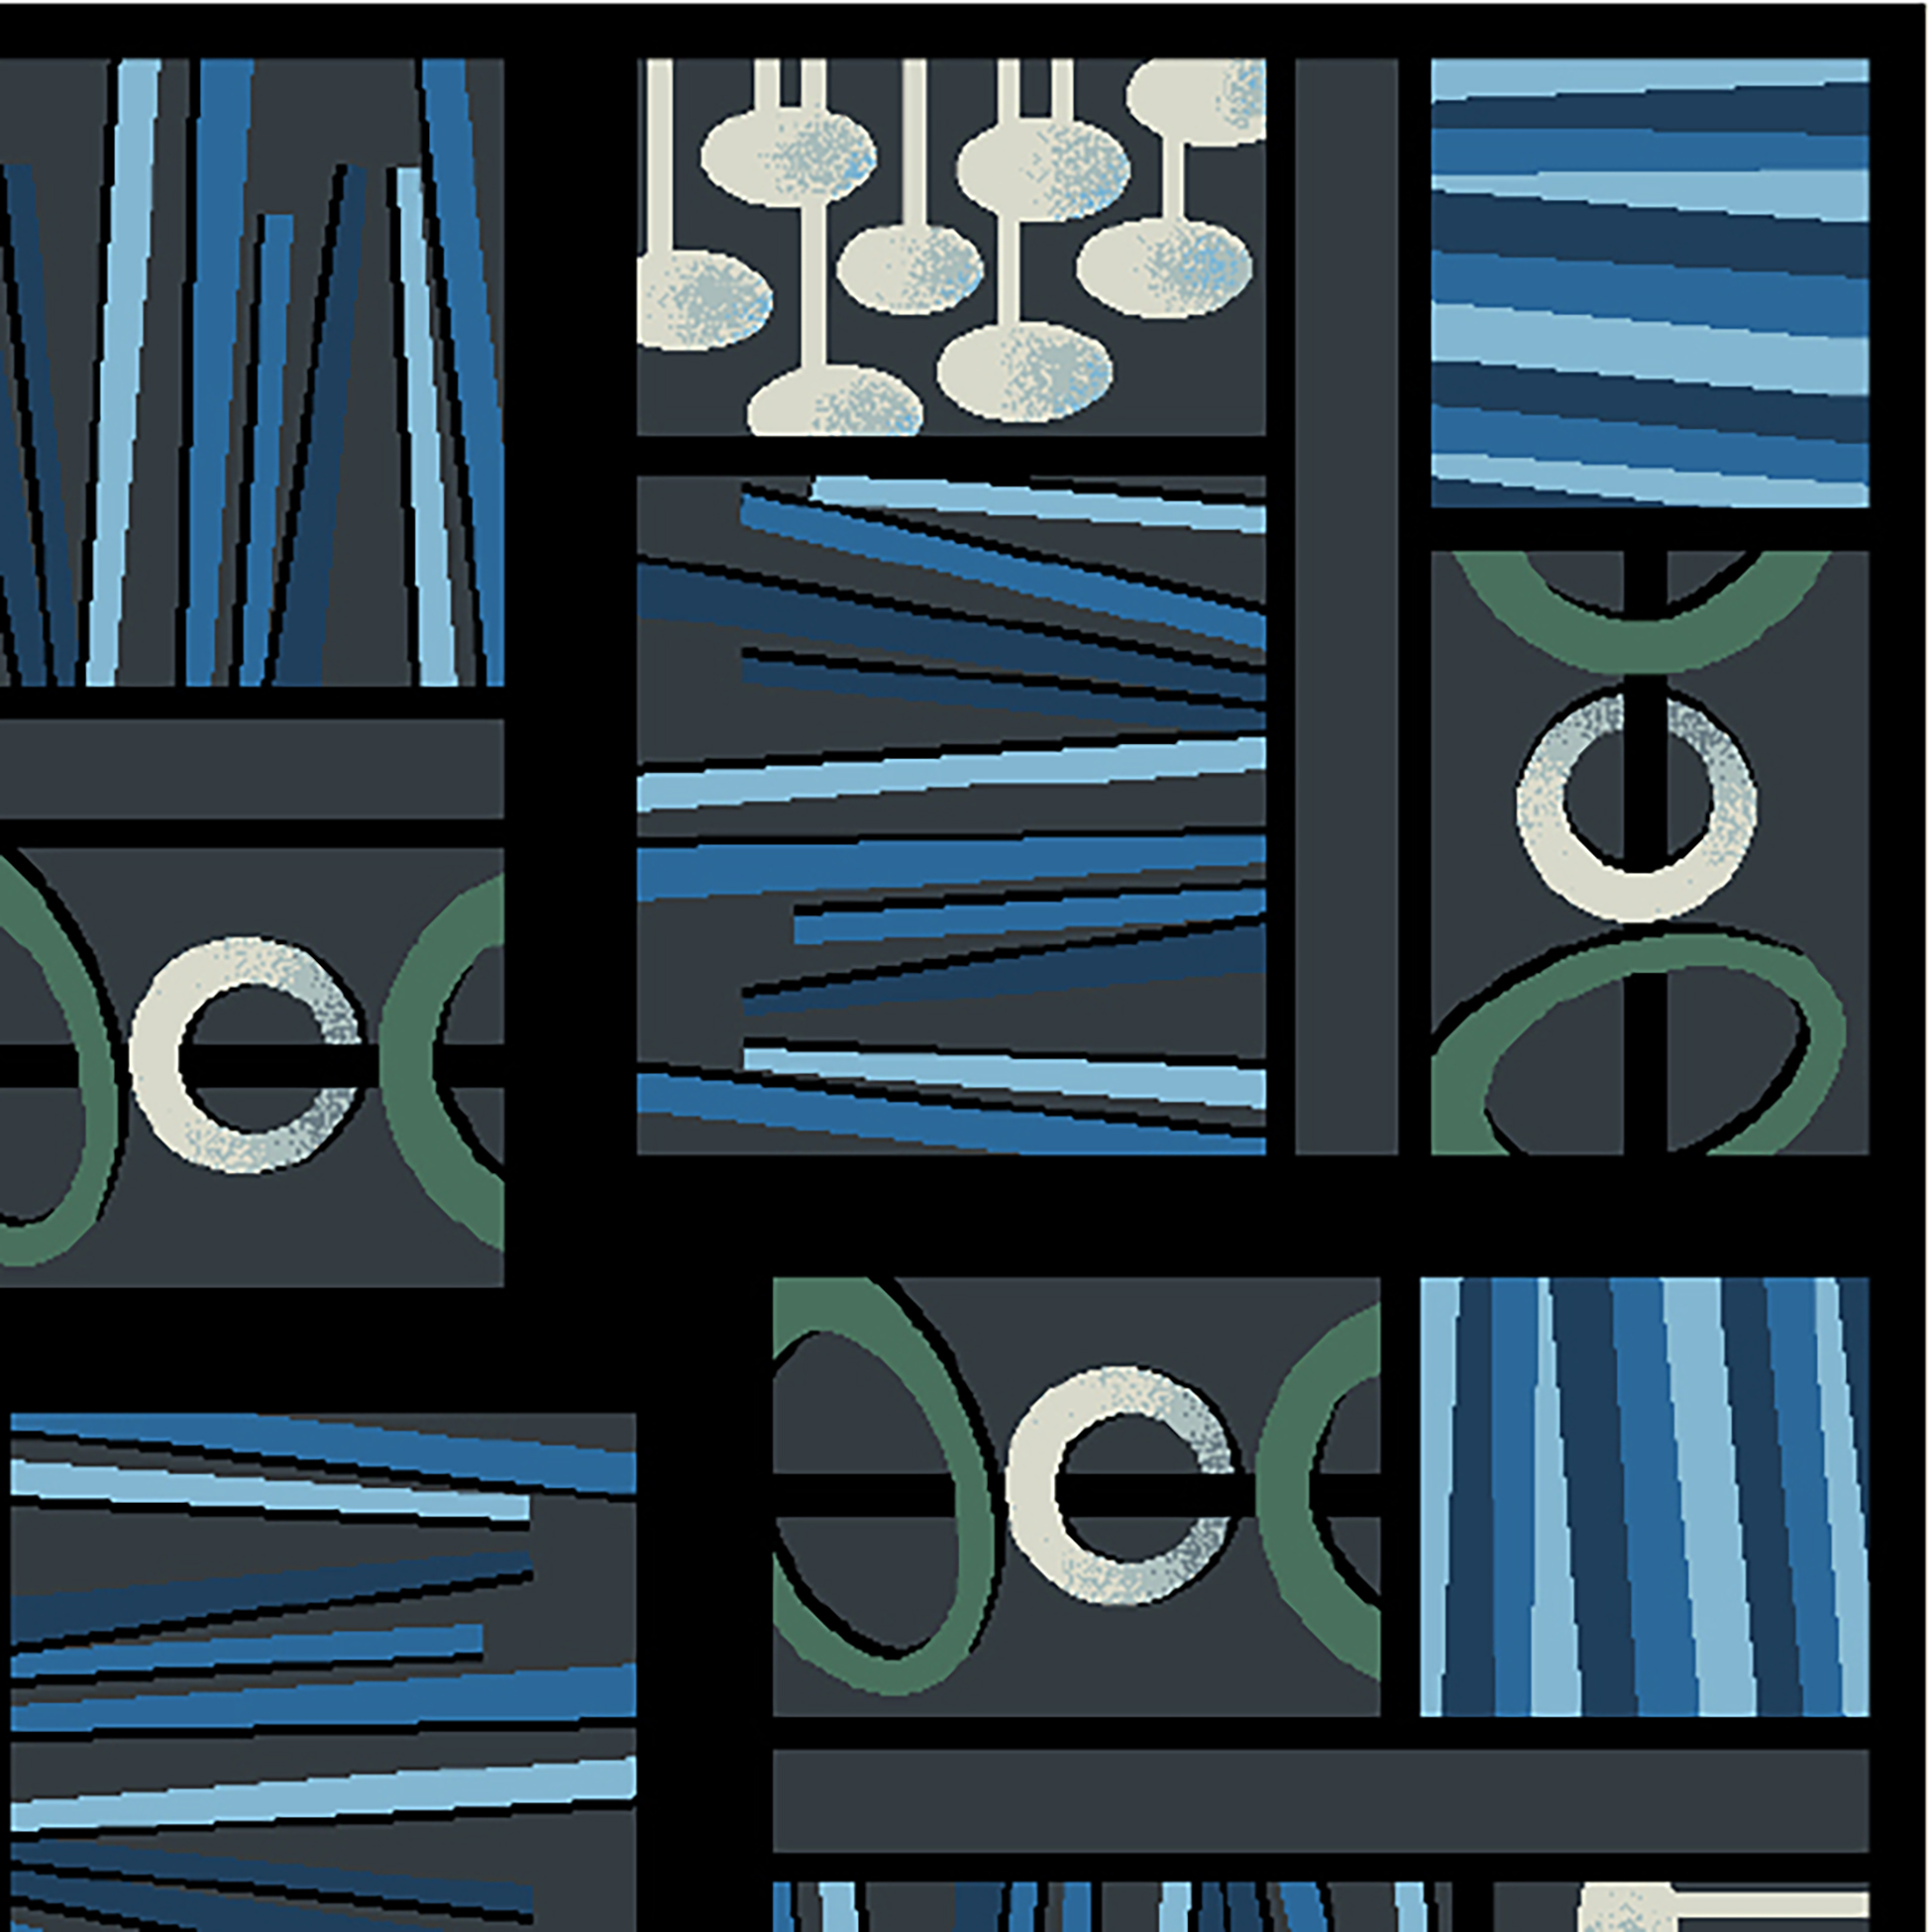 Abstracture-IMAGE 26.jpg